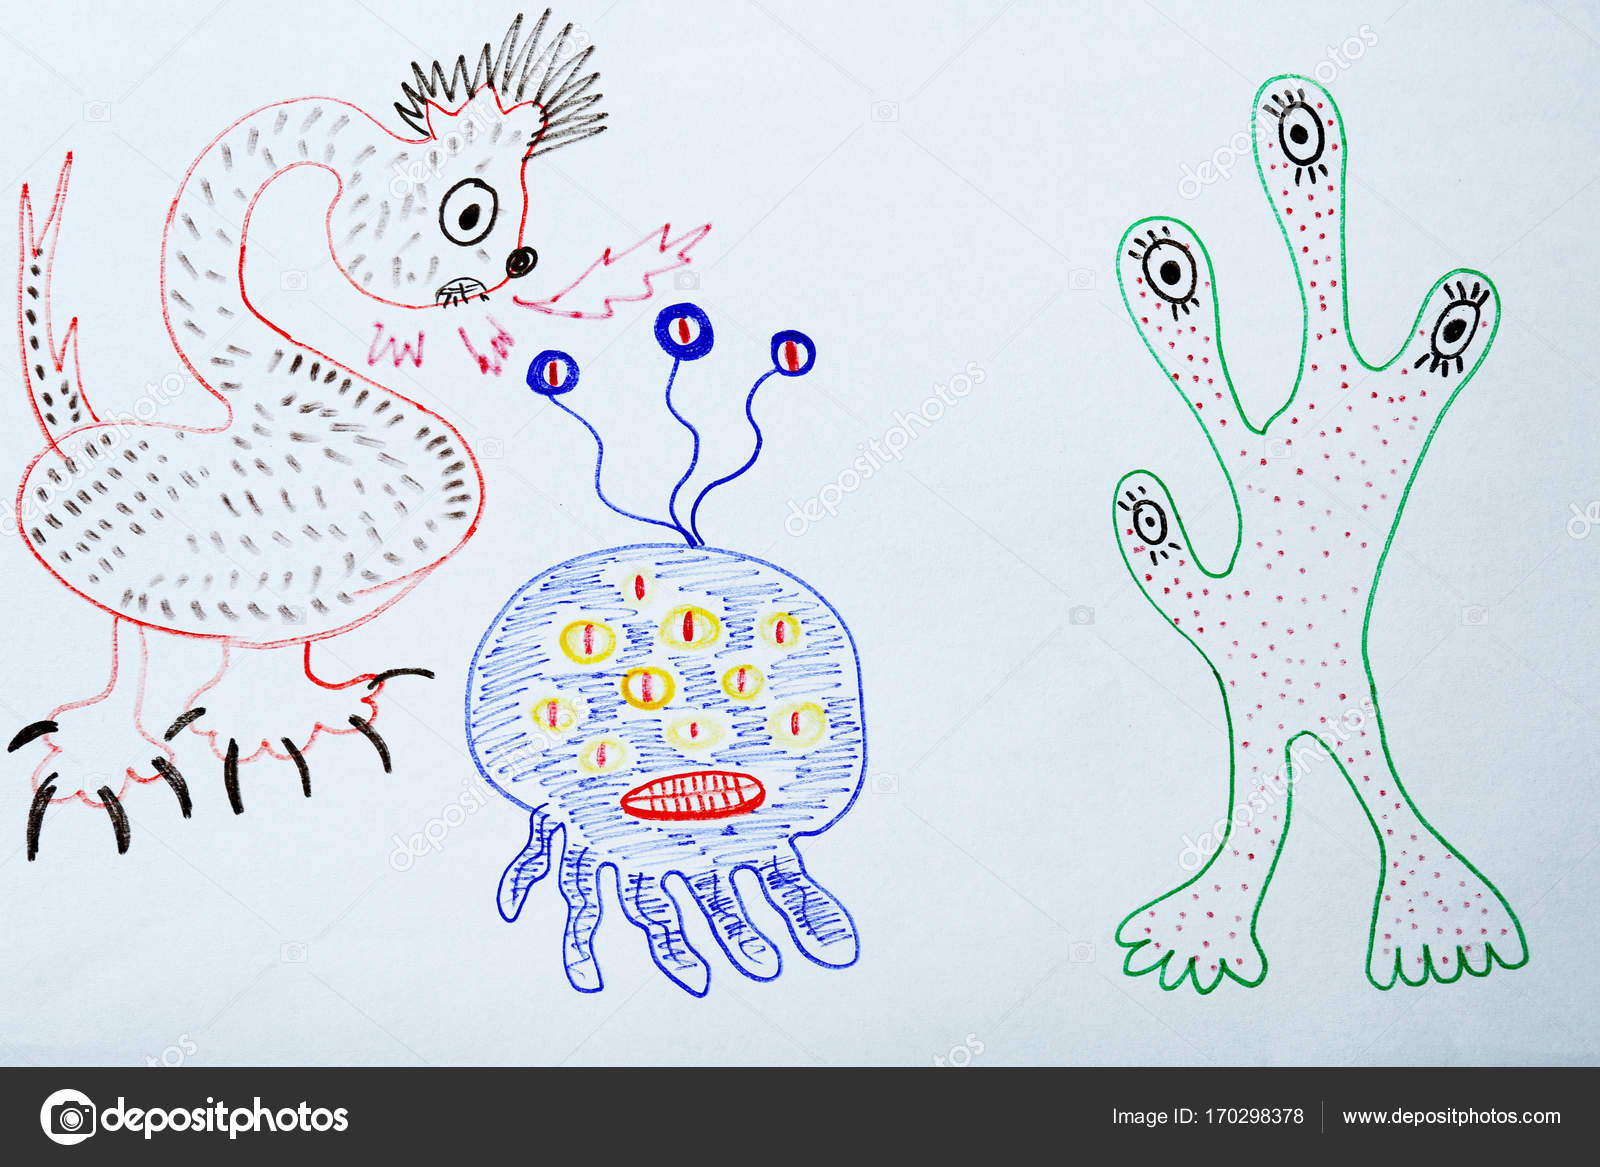 Drawings Scary Monsters Child S Drawing Of Scary Monsters Stock Photo C Belchonock 170298378